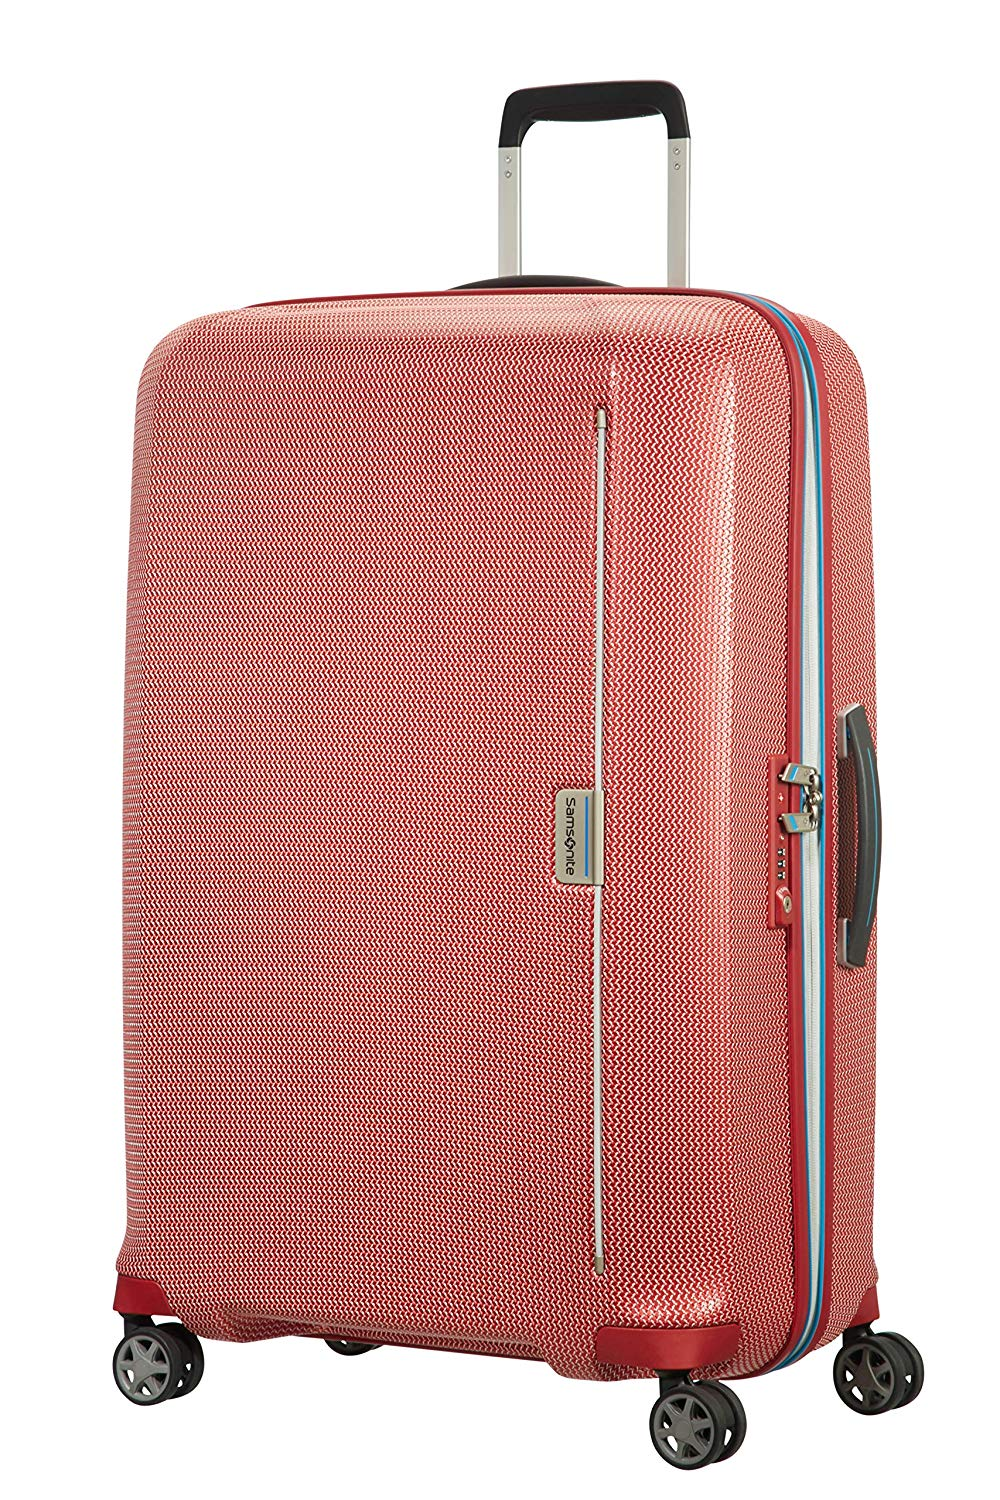 Samsonite Mixmesh - Spinner Large Koffer, 75 cm, 93 Liter, Red/Pacific Blue